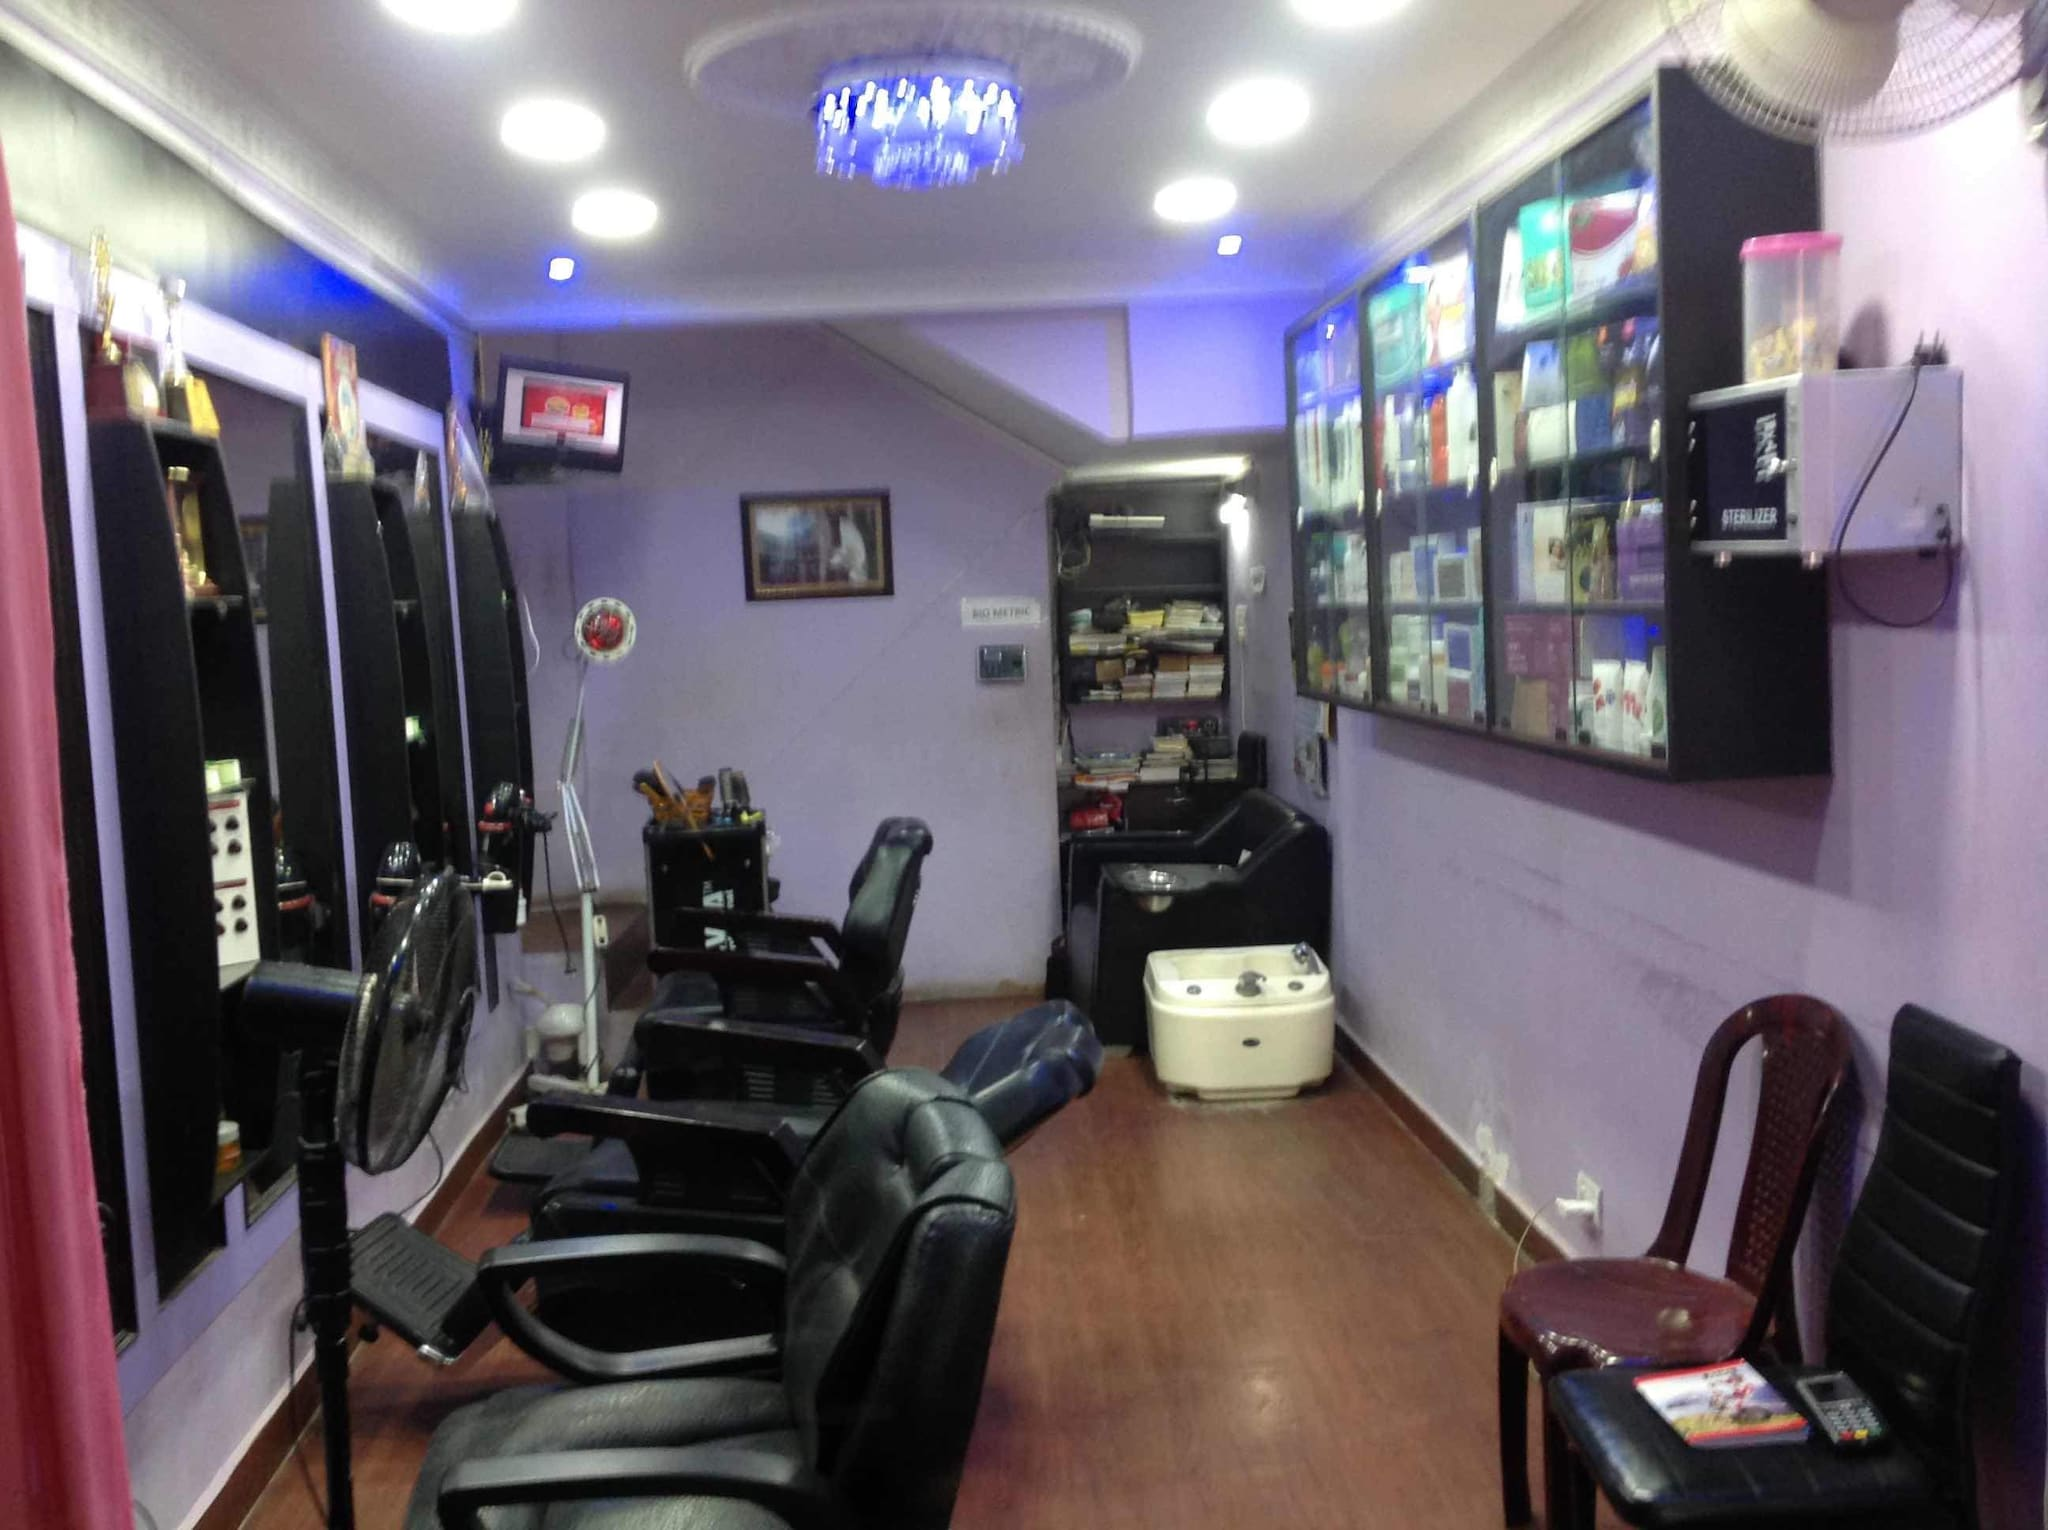 Salon De Fitness Glow India Beauty Salon Fitness Centre And Tattoos In